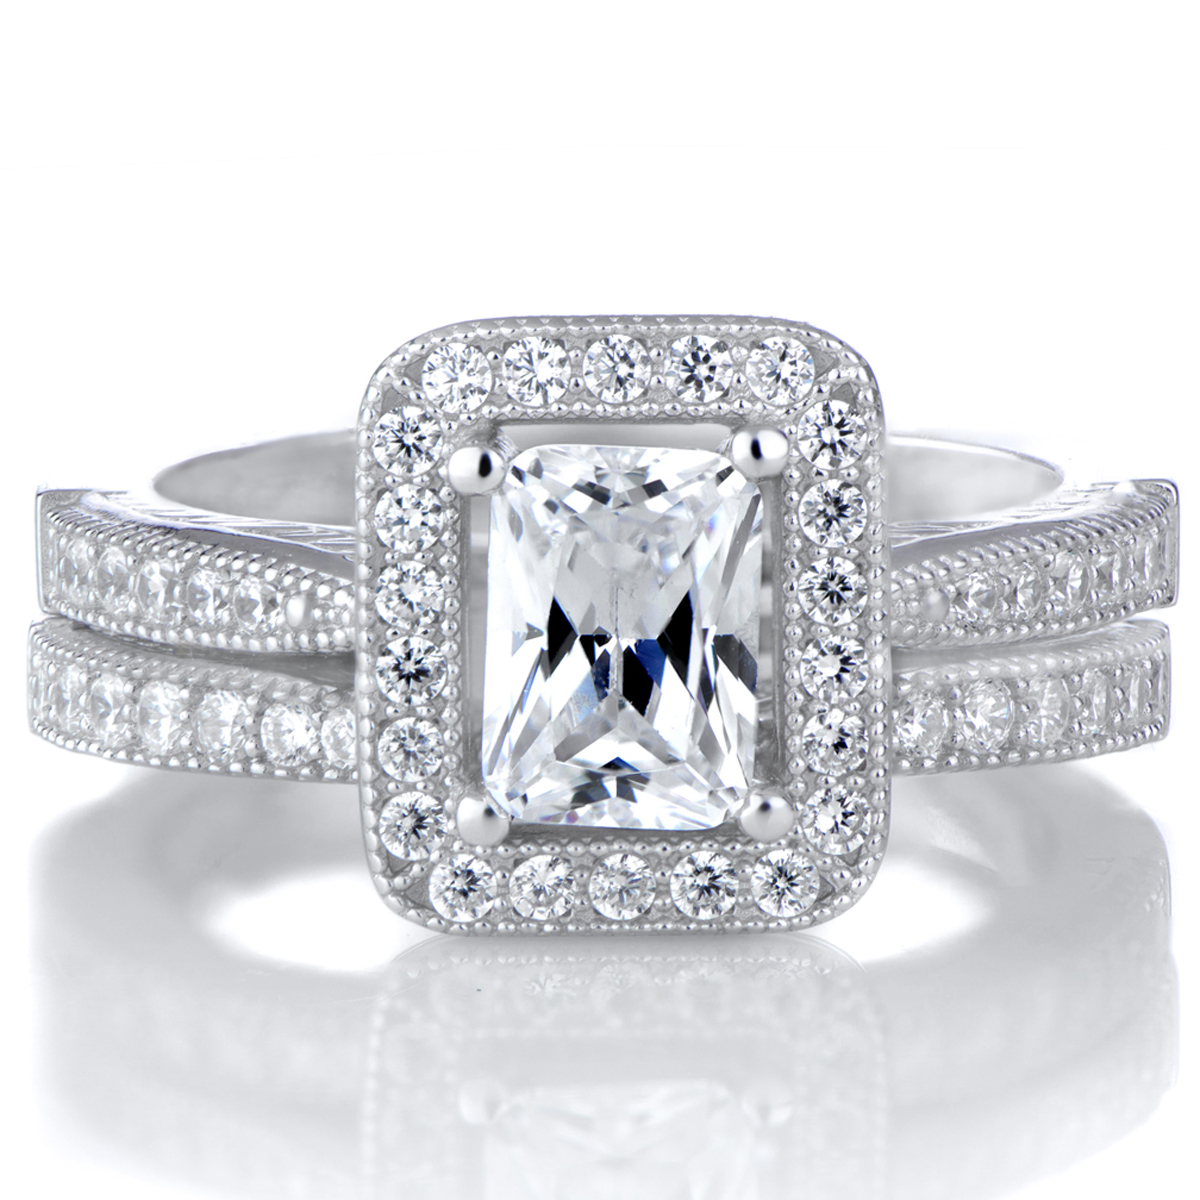 Kilma s Emerald Cut CZ Halo Wedding Ring Set